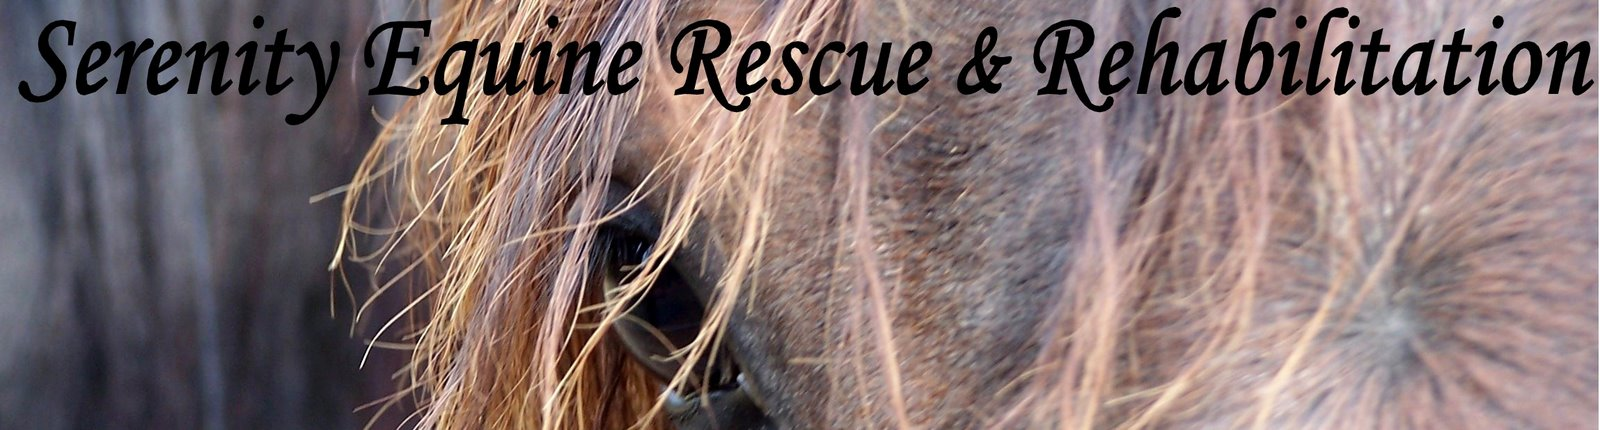 Serenity Equine Rescue and Rehabilitation